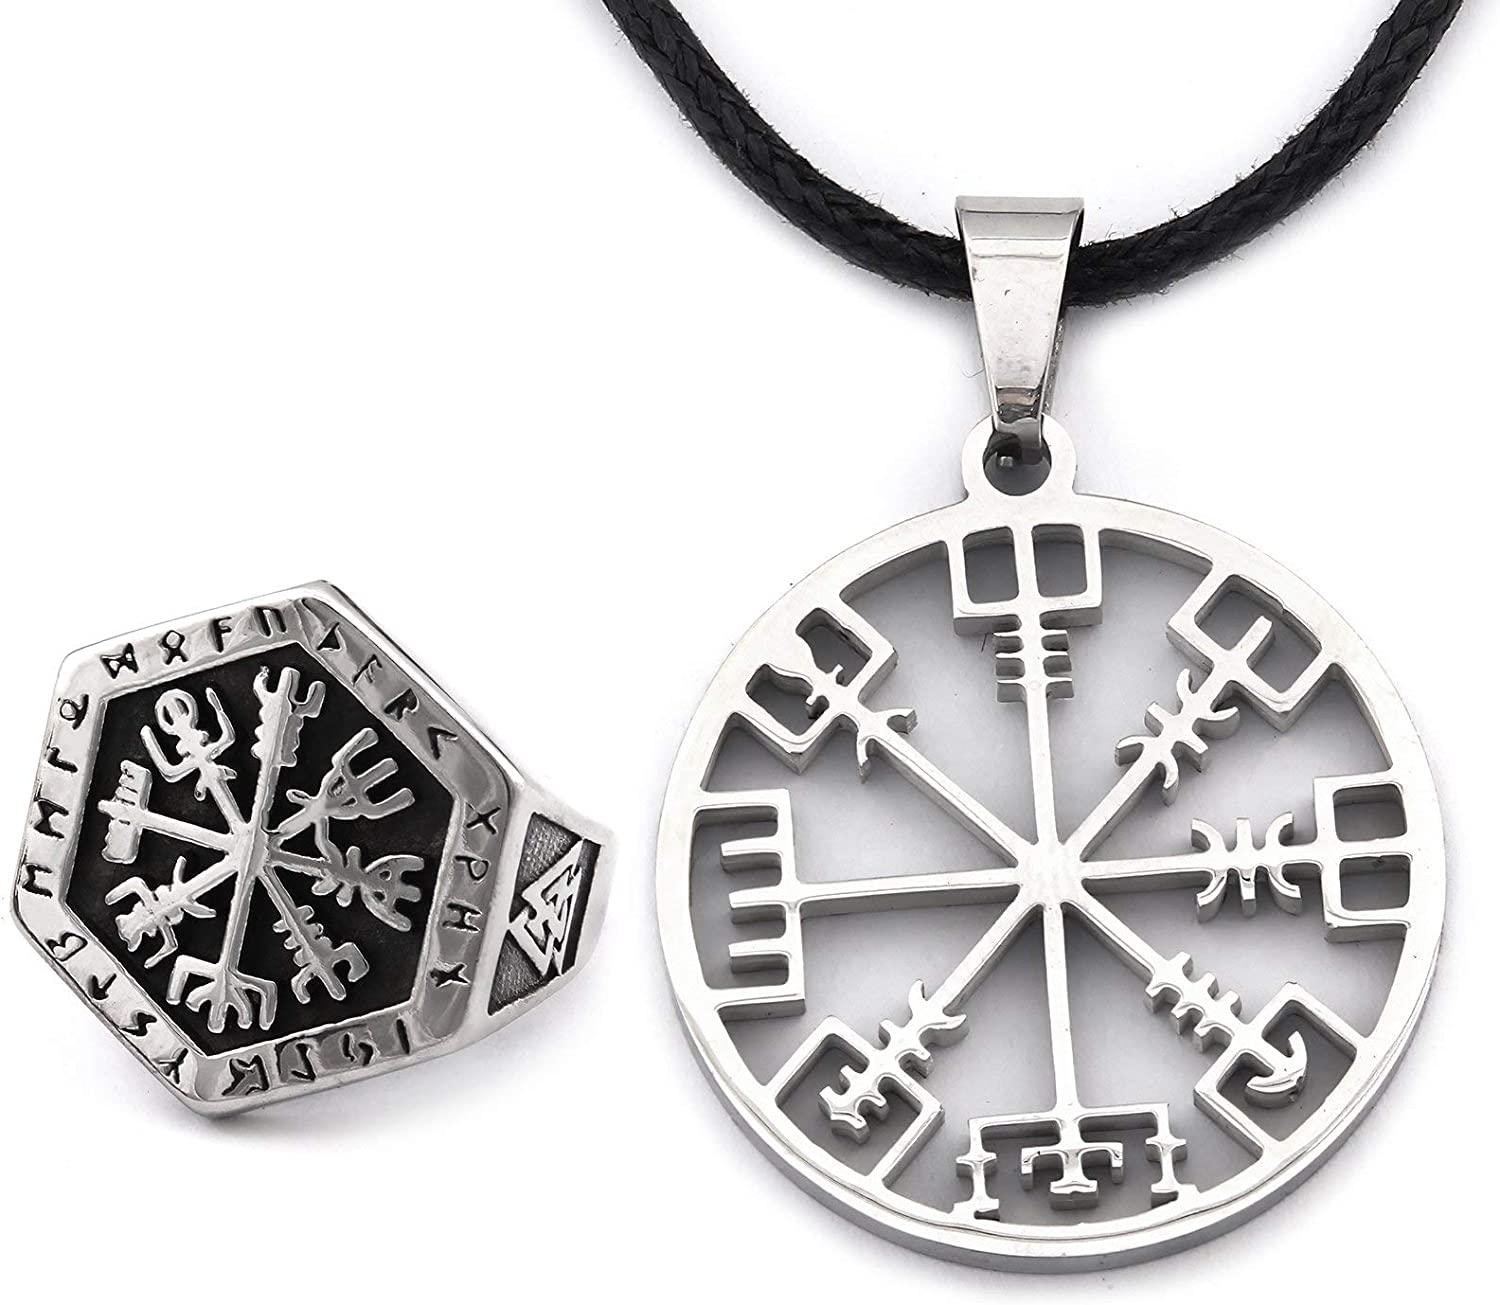 DUTO Odin Valknut Ring Vegvisir Viking Compass Necklace Combo Set Adjustable Cord Chain Pagan Protection Strength Amulet